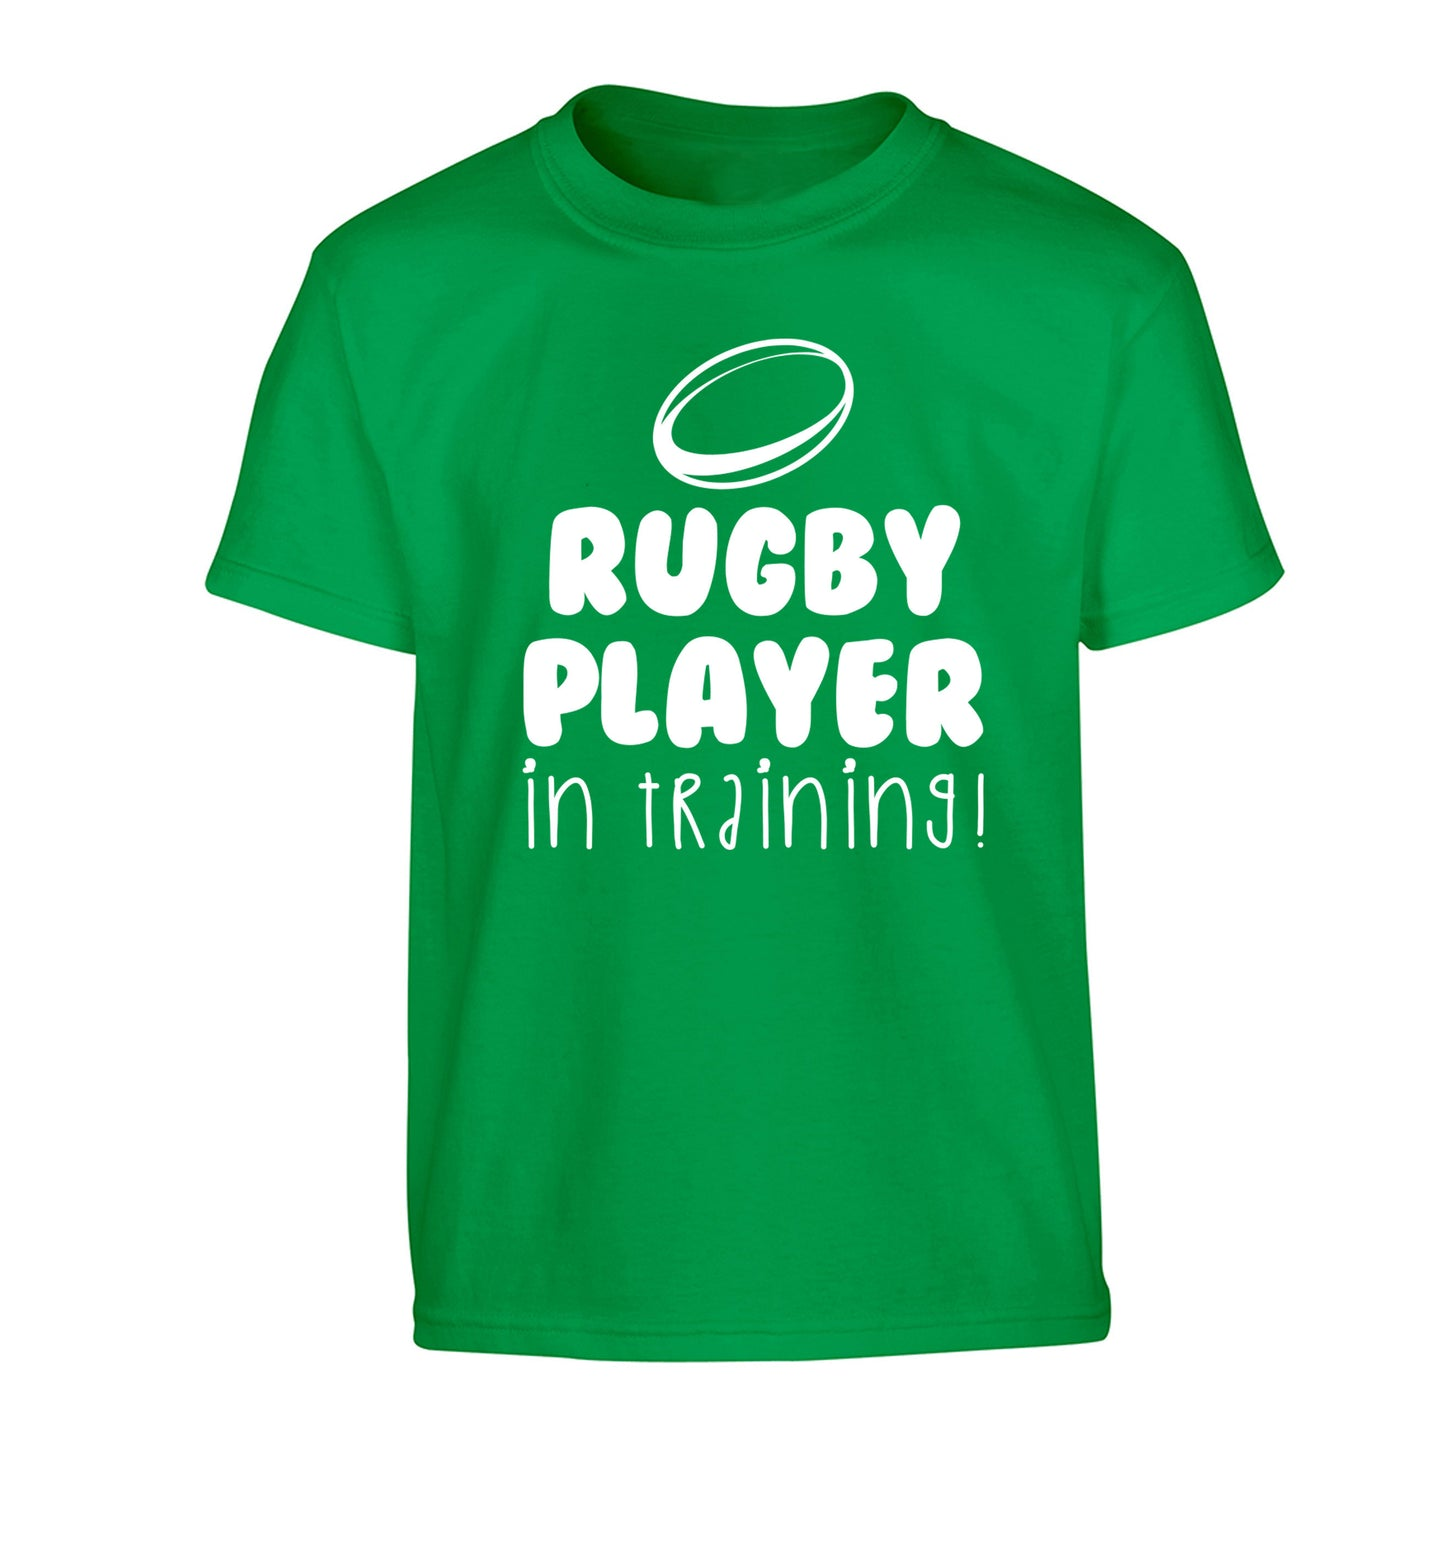 Rugby player in training Children's green Tshirt 12-14 Years